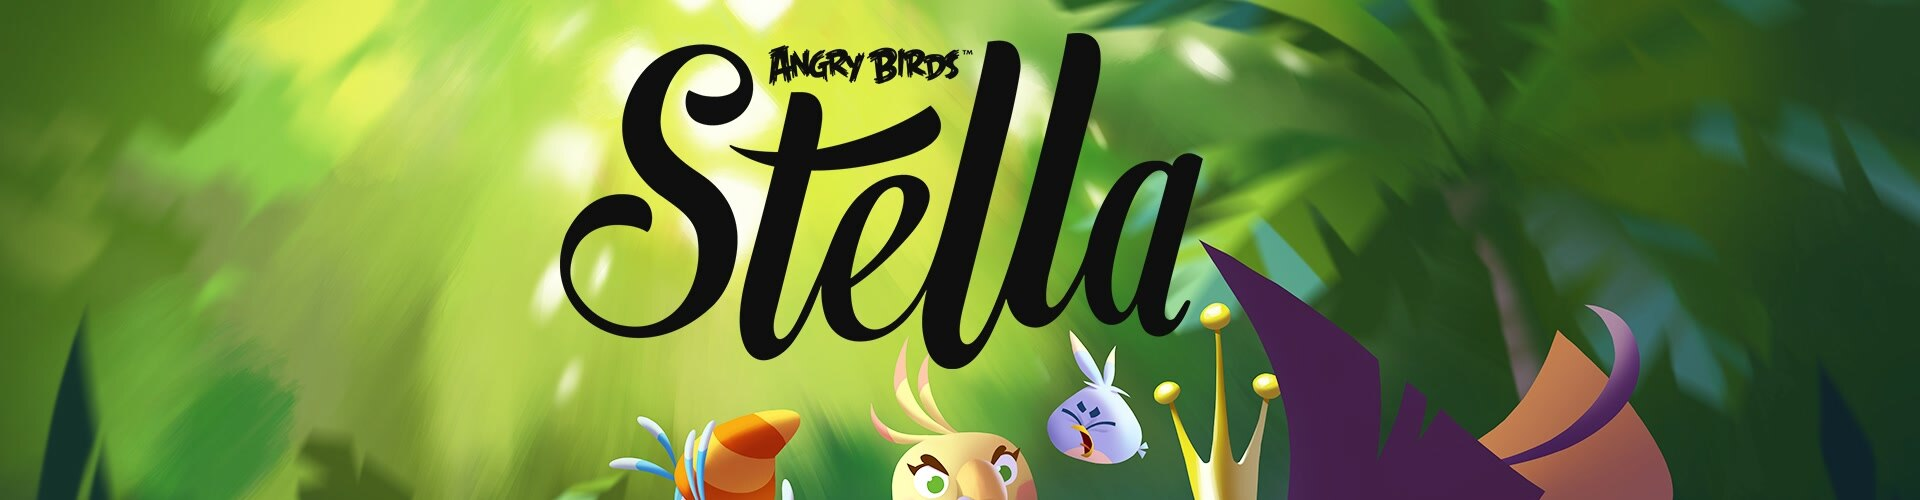 Watch Angry Birds Stella Online